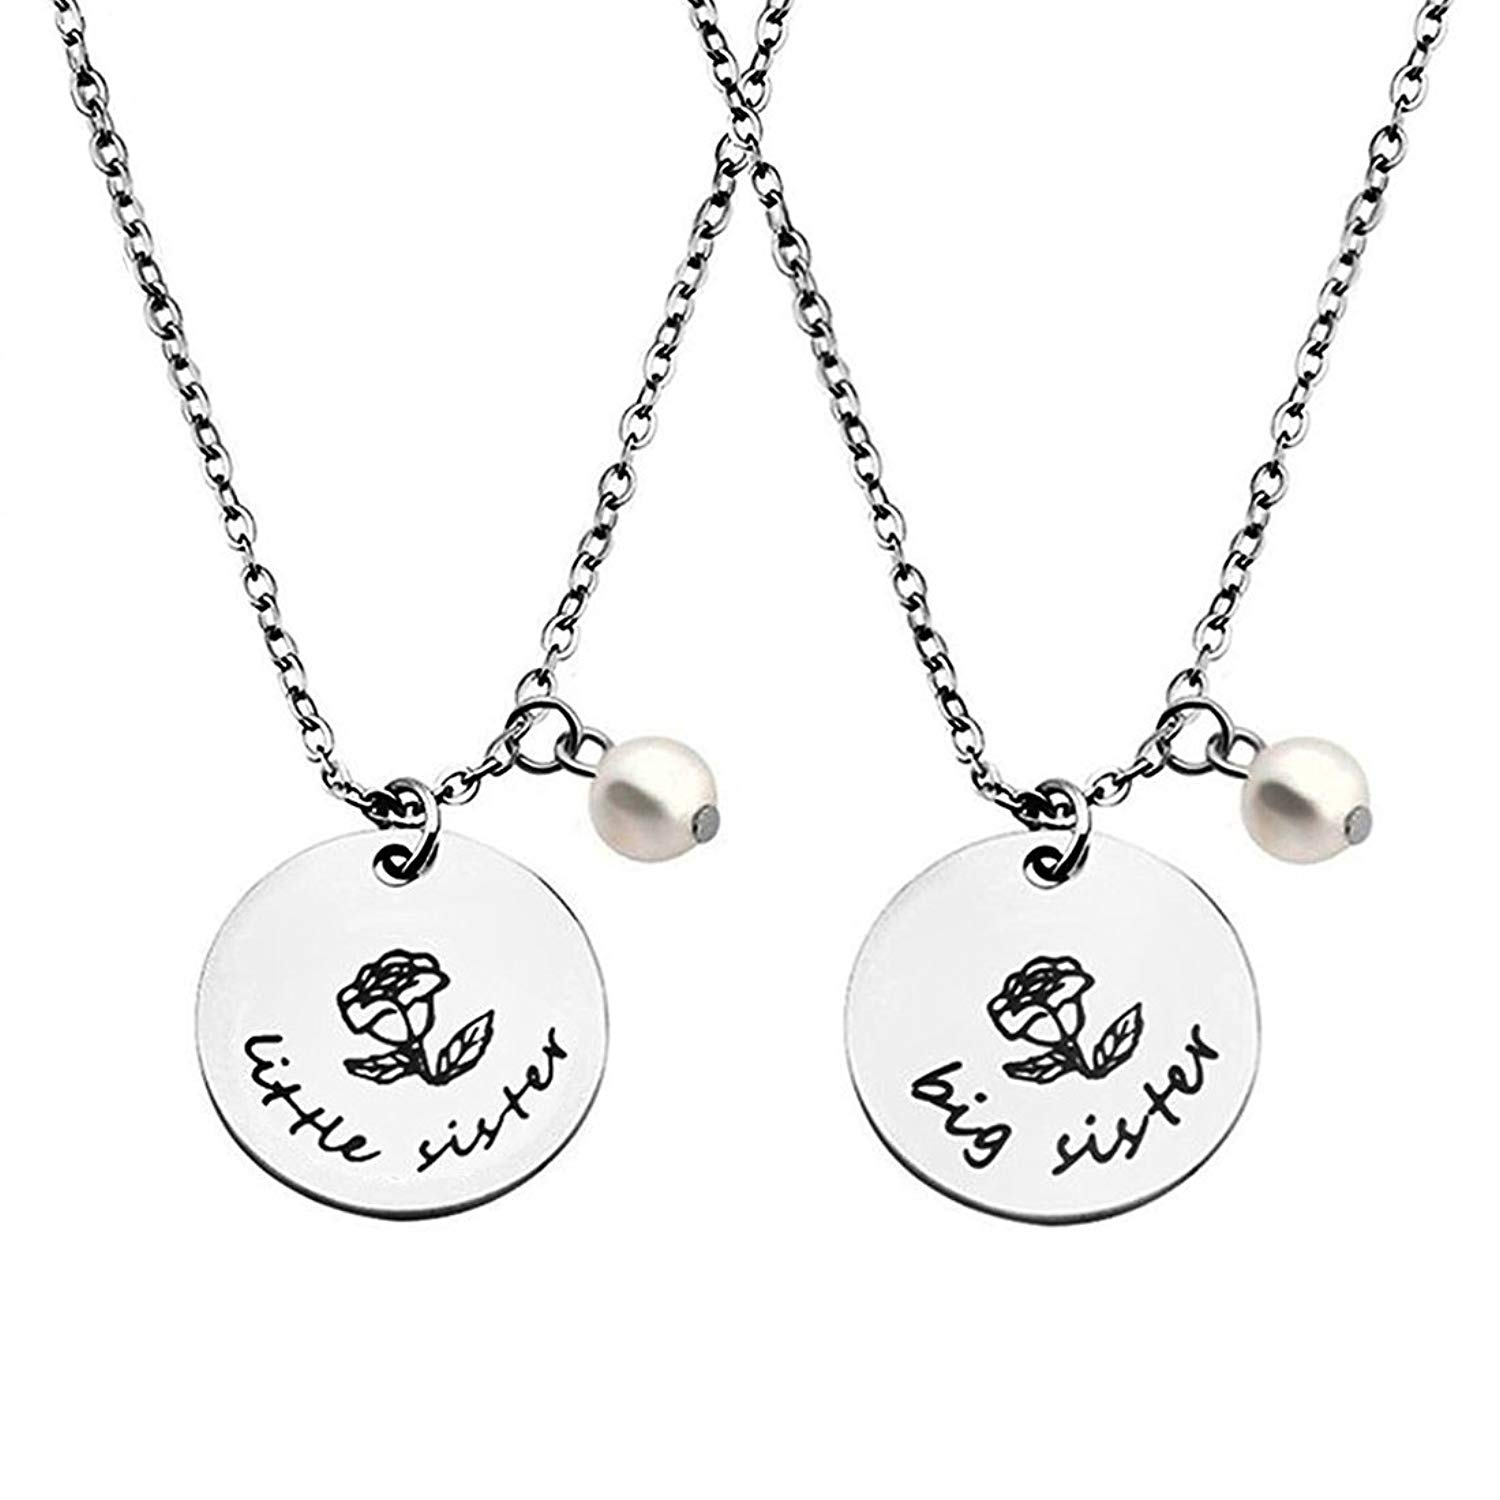 a0d0ae5163253 Cheap Best Sister Necklace, find Best Sister Necklace deals on line ...